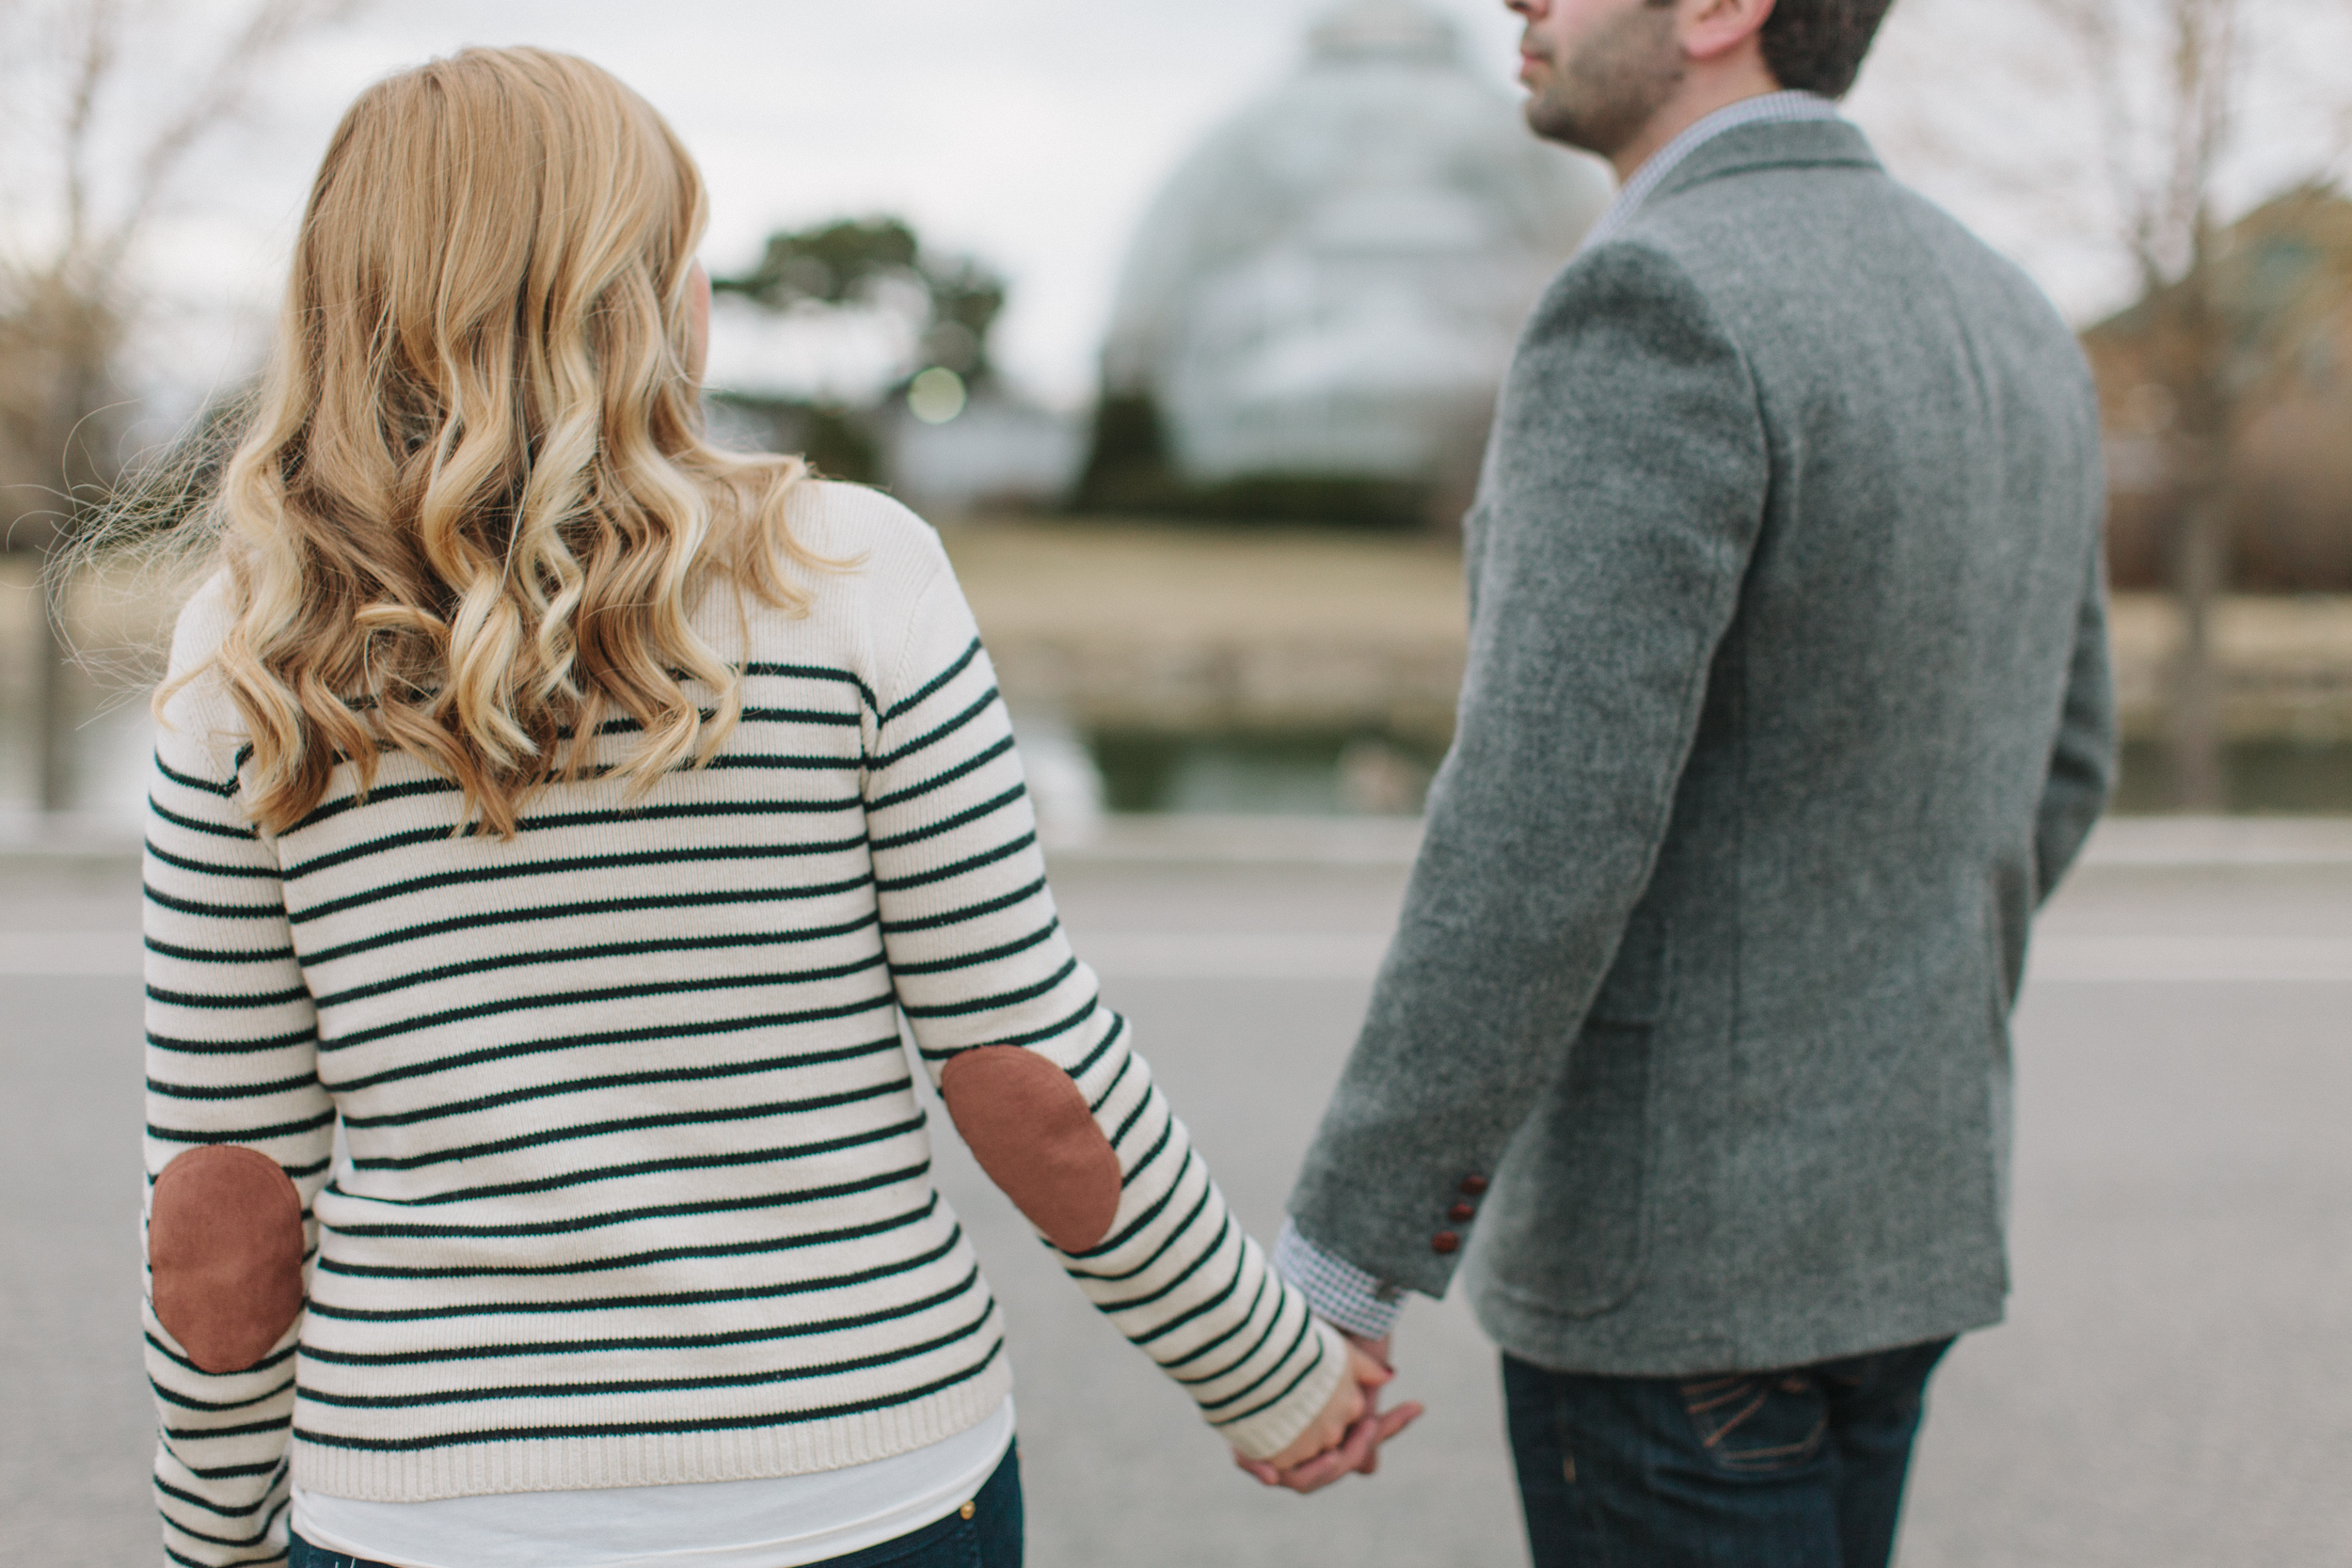 Detroit Michigan Belle Isle Engagement photos Lifestyle Wedding Photographer Mae Stier Candid Photography-016.jpg